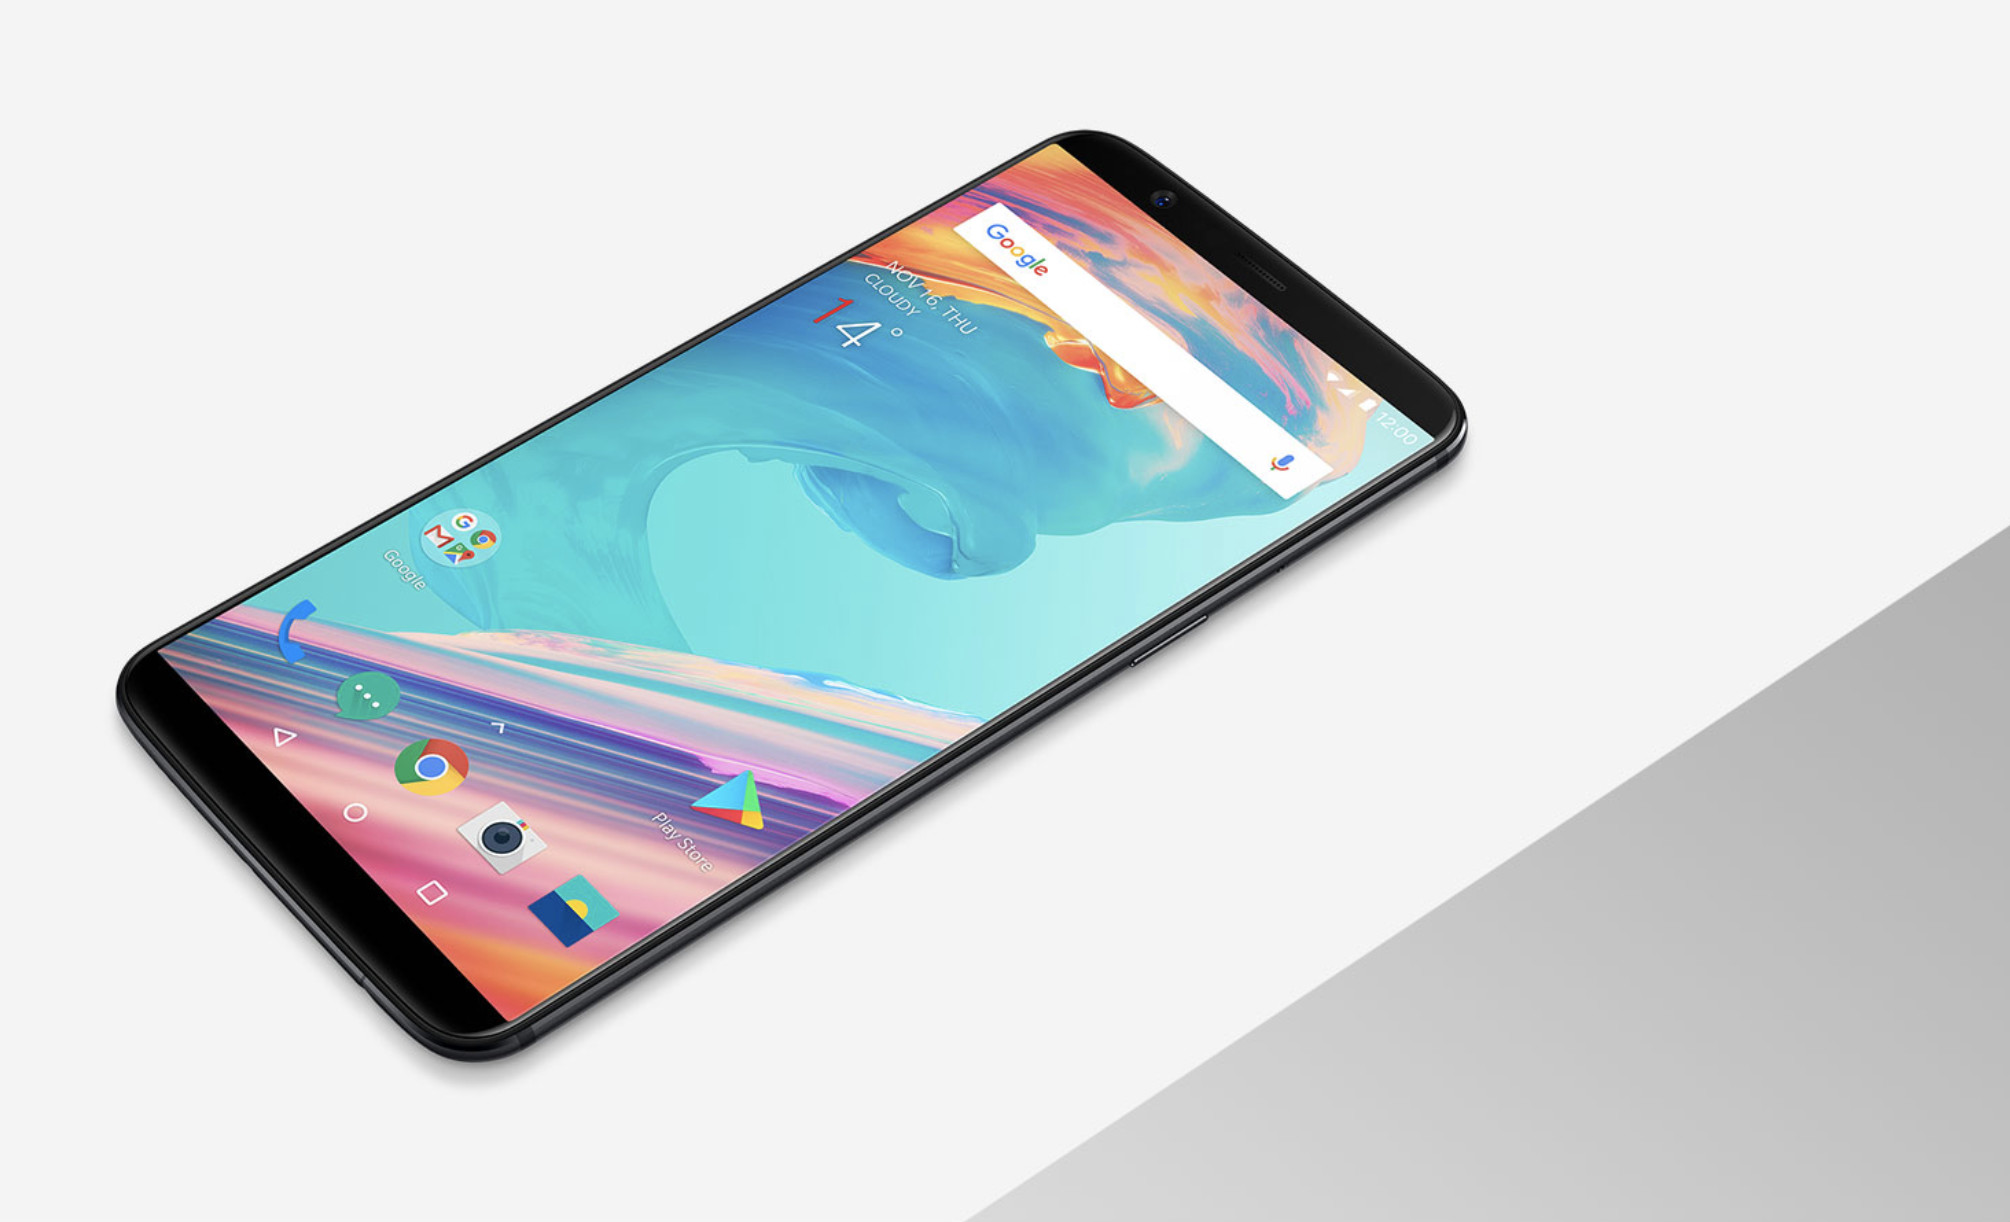 OnePlus 5T can't stream content from Netflix in HD - yet